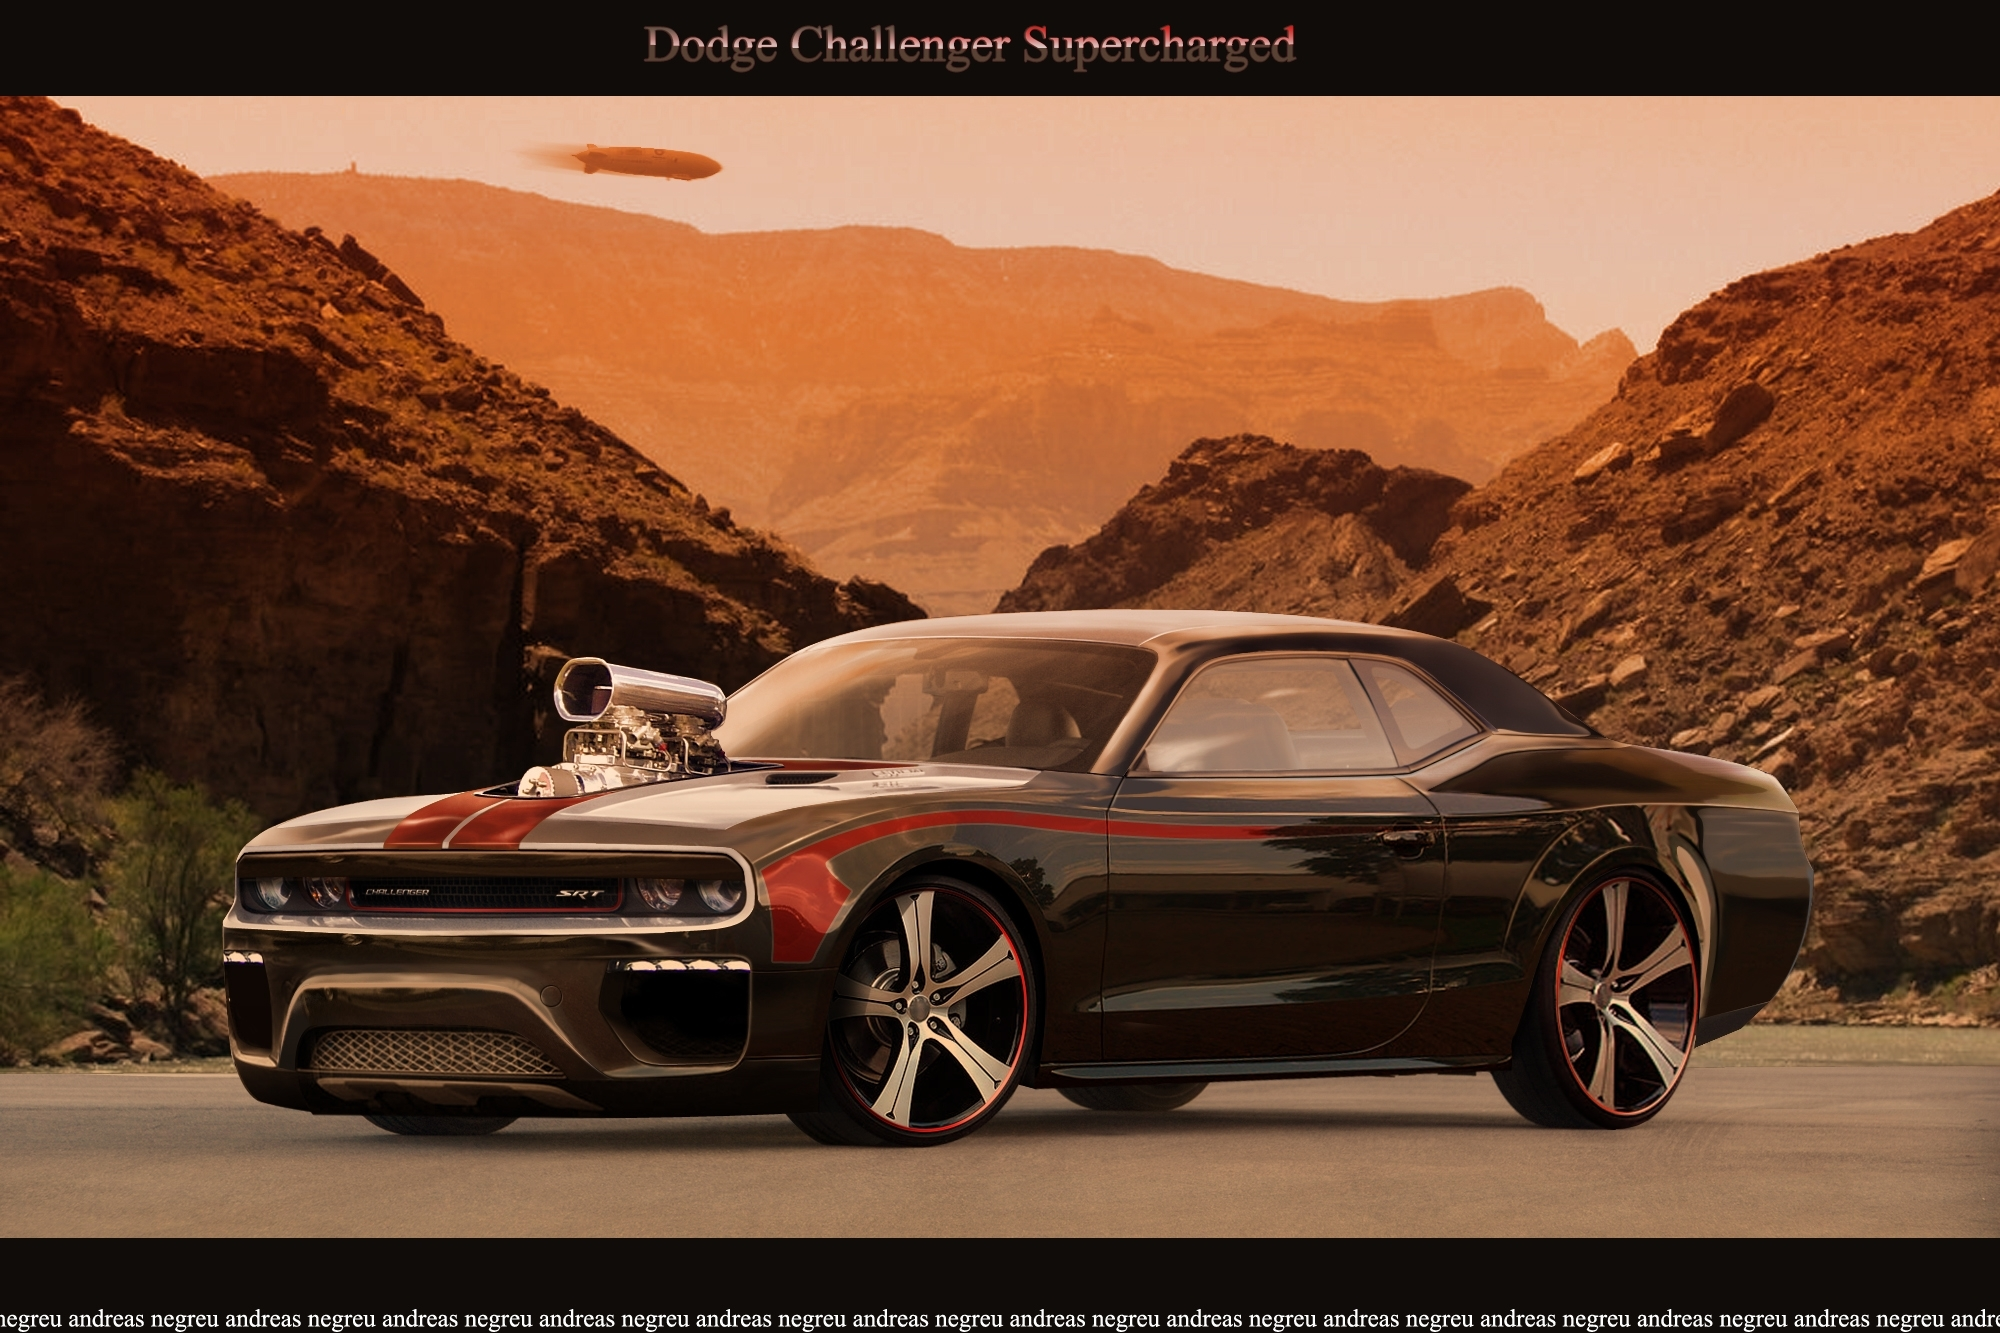 Httpicstrimdiantartartdodge challenger supercharged vehicles dodge hot rod muscle car challenger wallpaper sciox Image collections